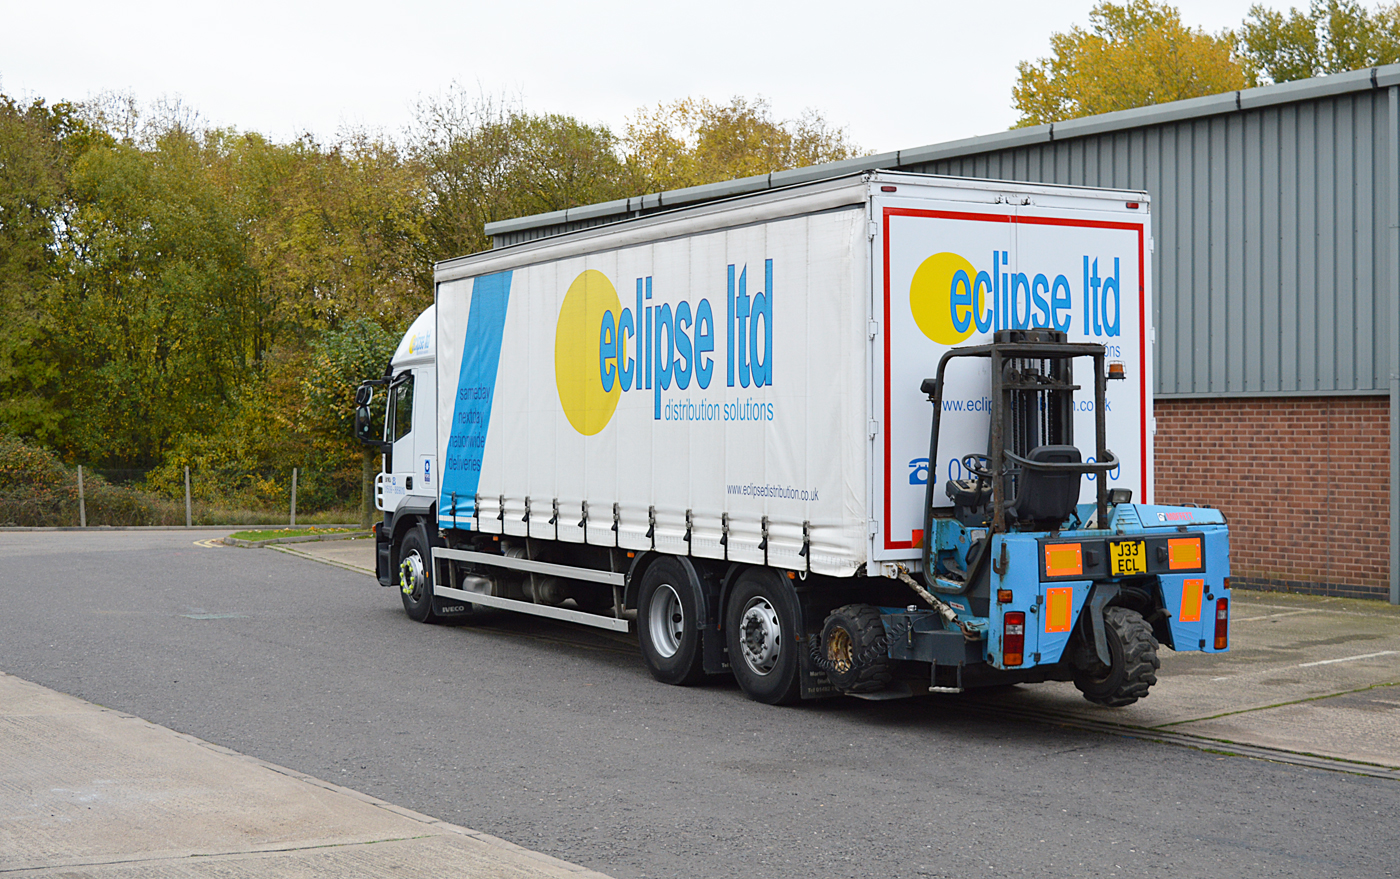 An image showing a fully livered haulage lorry used by Eclipse Distribution Solutions Ltd.